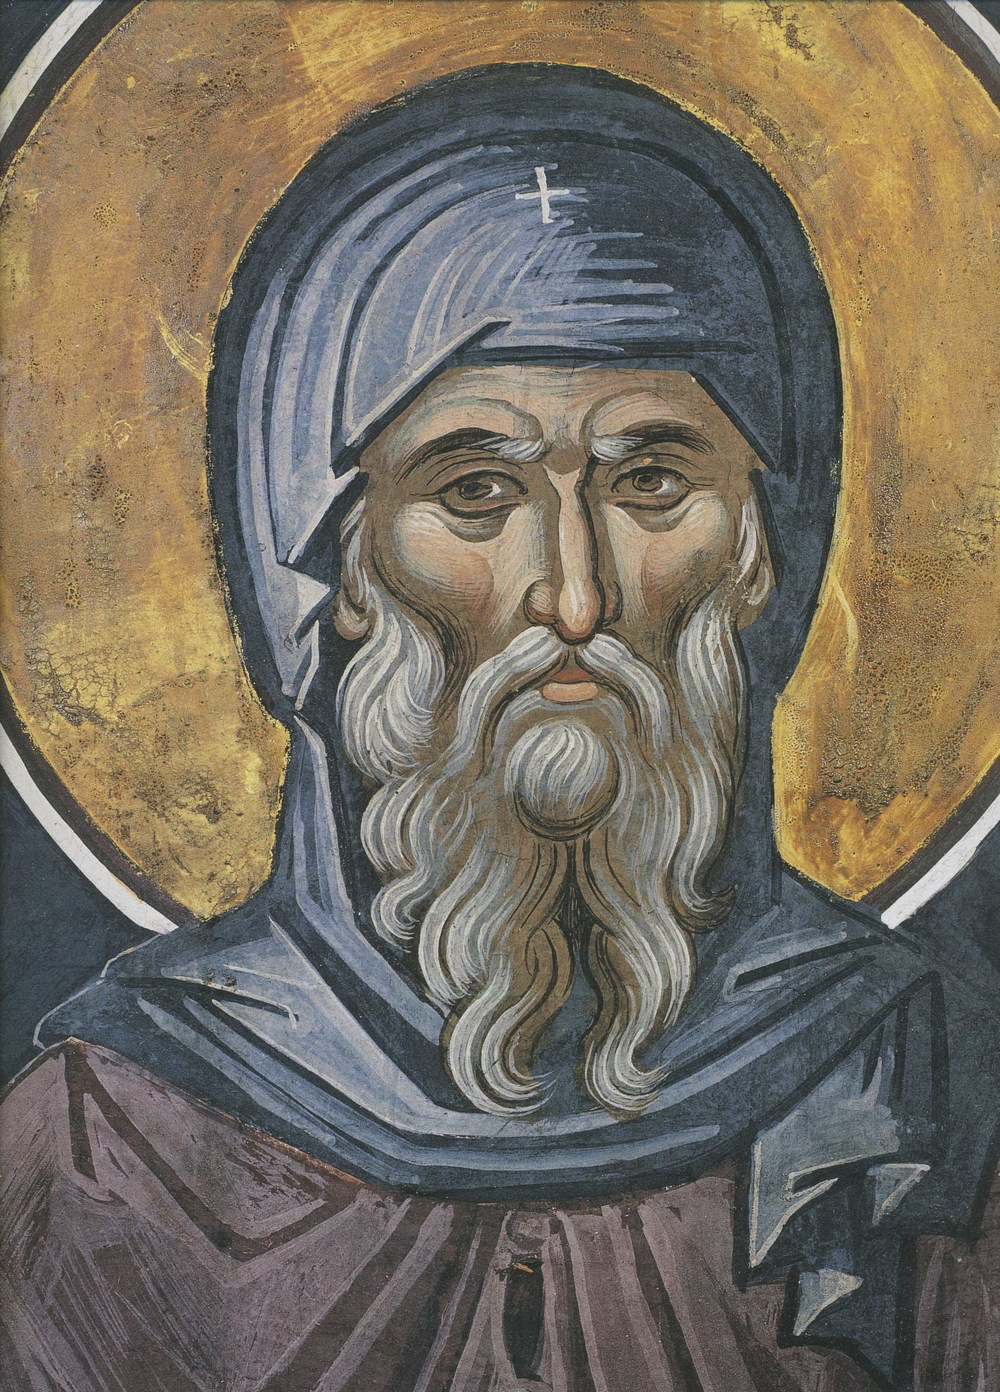 St. Anthony the Great